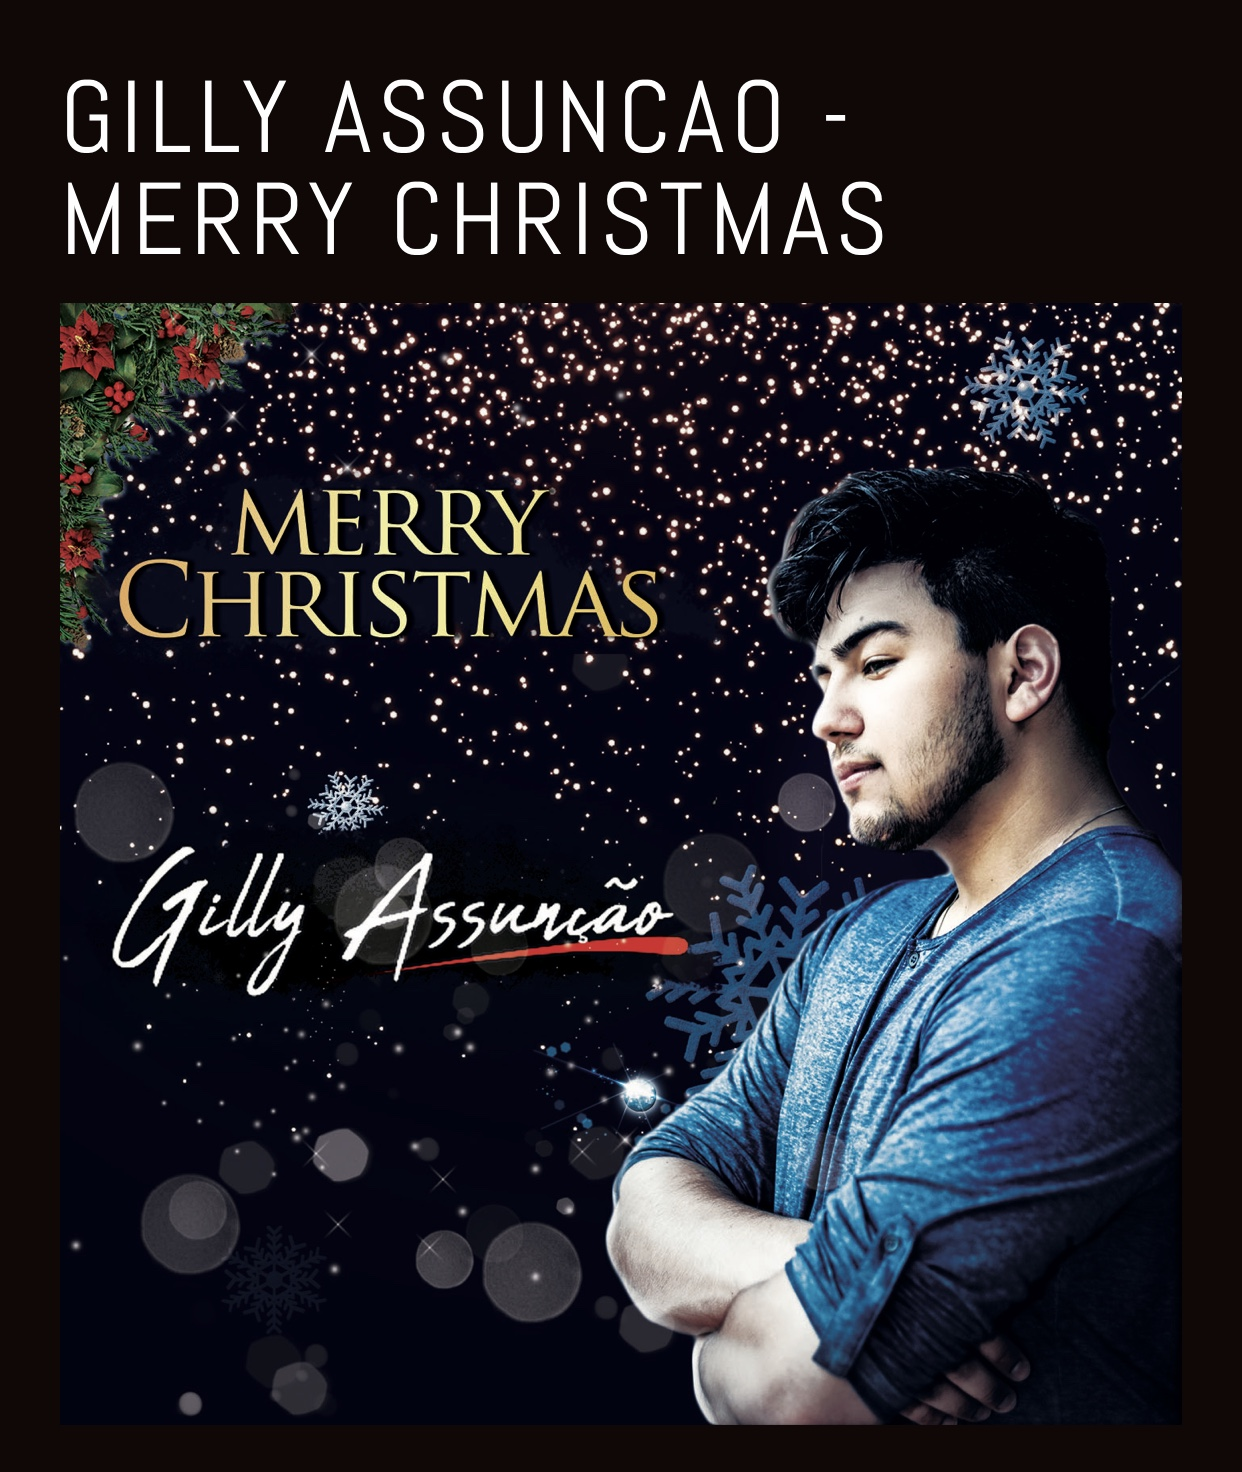 Gilly's Christmas album is available online and at Russo's!